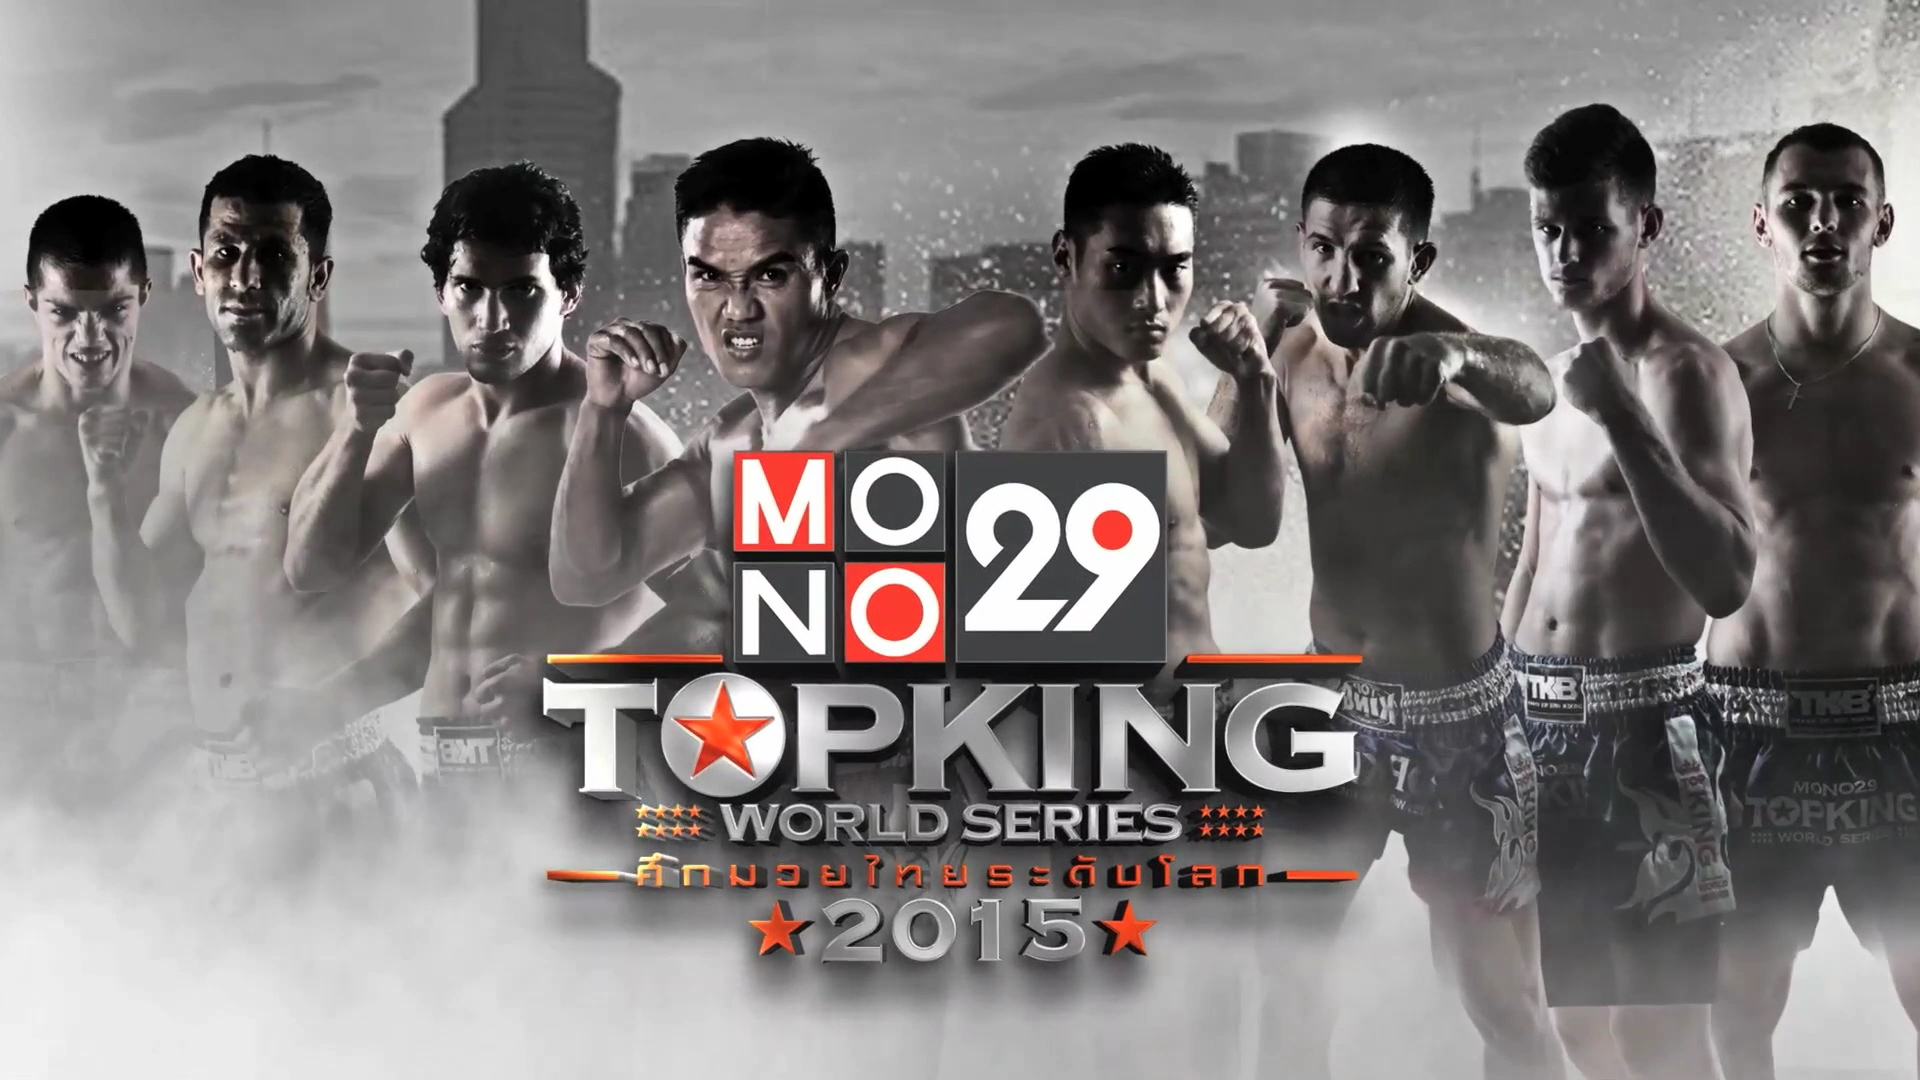 2CH_Promo_On580930(WED)_TopkingWorldSeries_SaNam3_0030_Sponsor.mp4_000028012